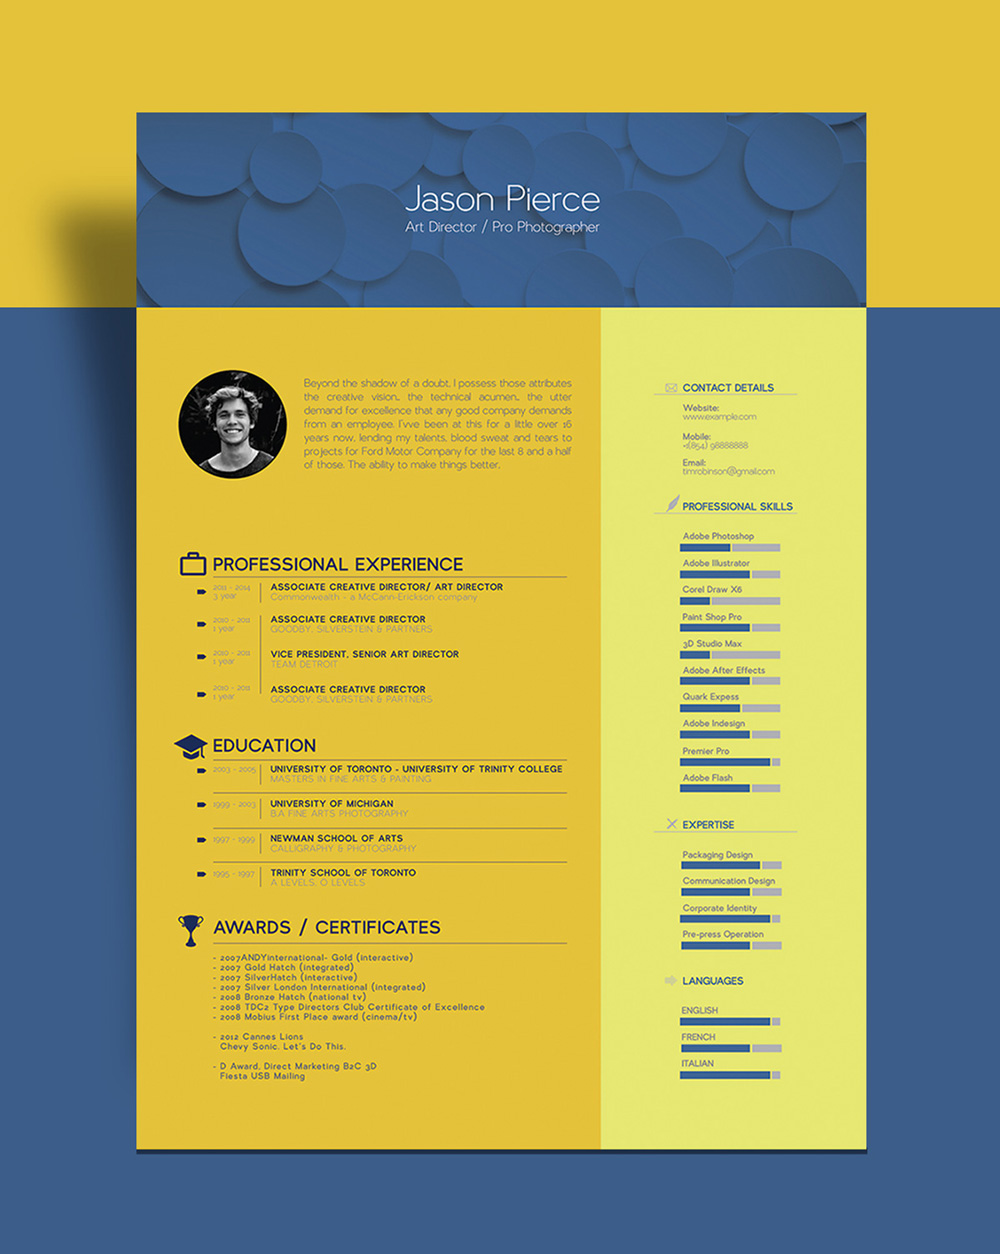 free beautiful resume  cv  template for graphic designer    art director -